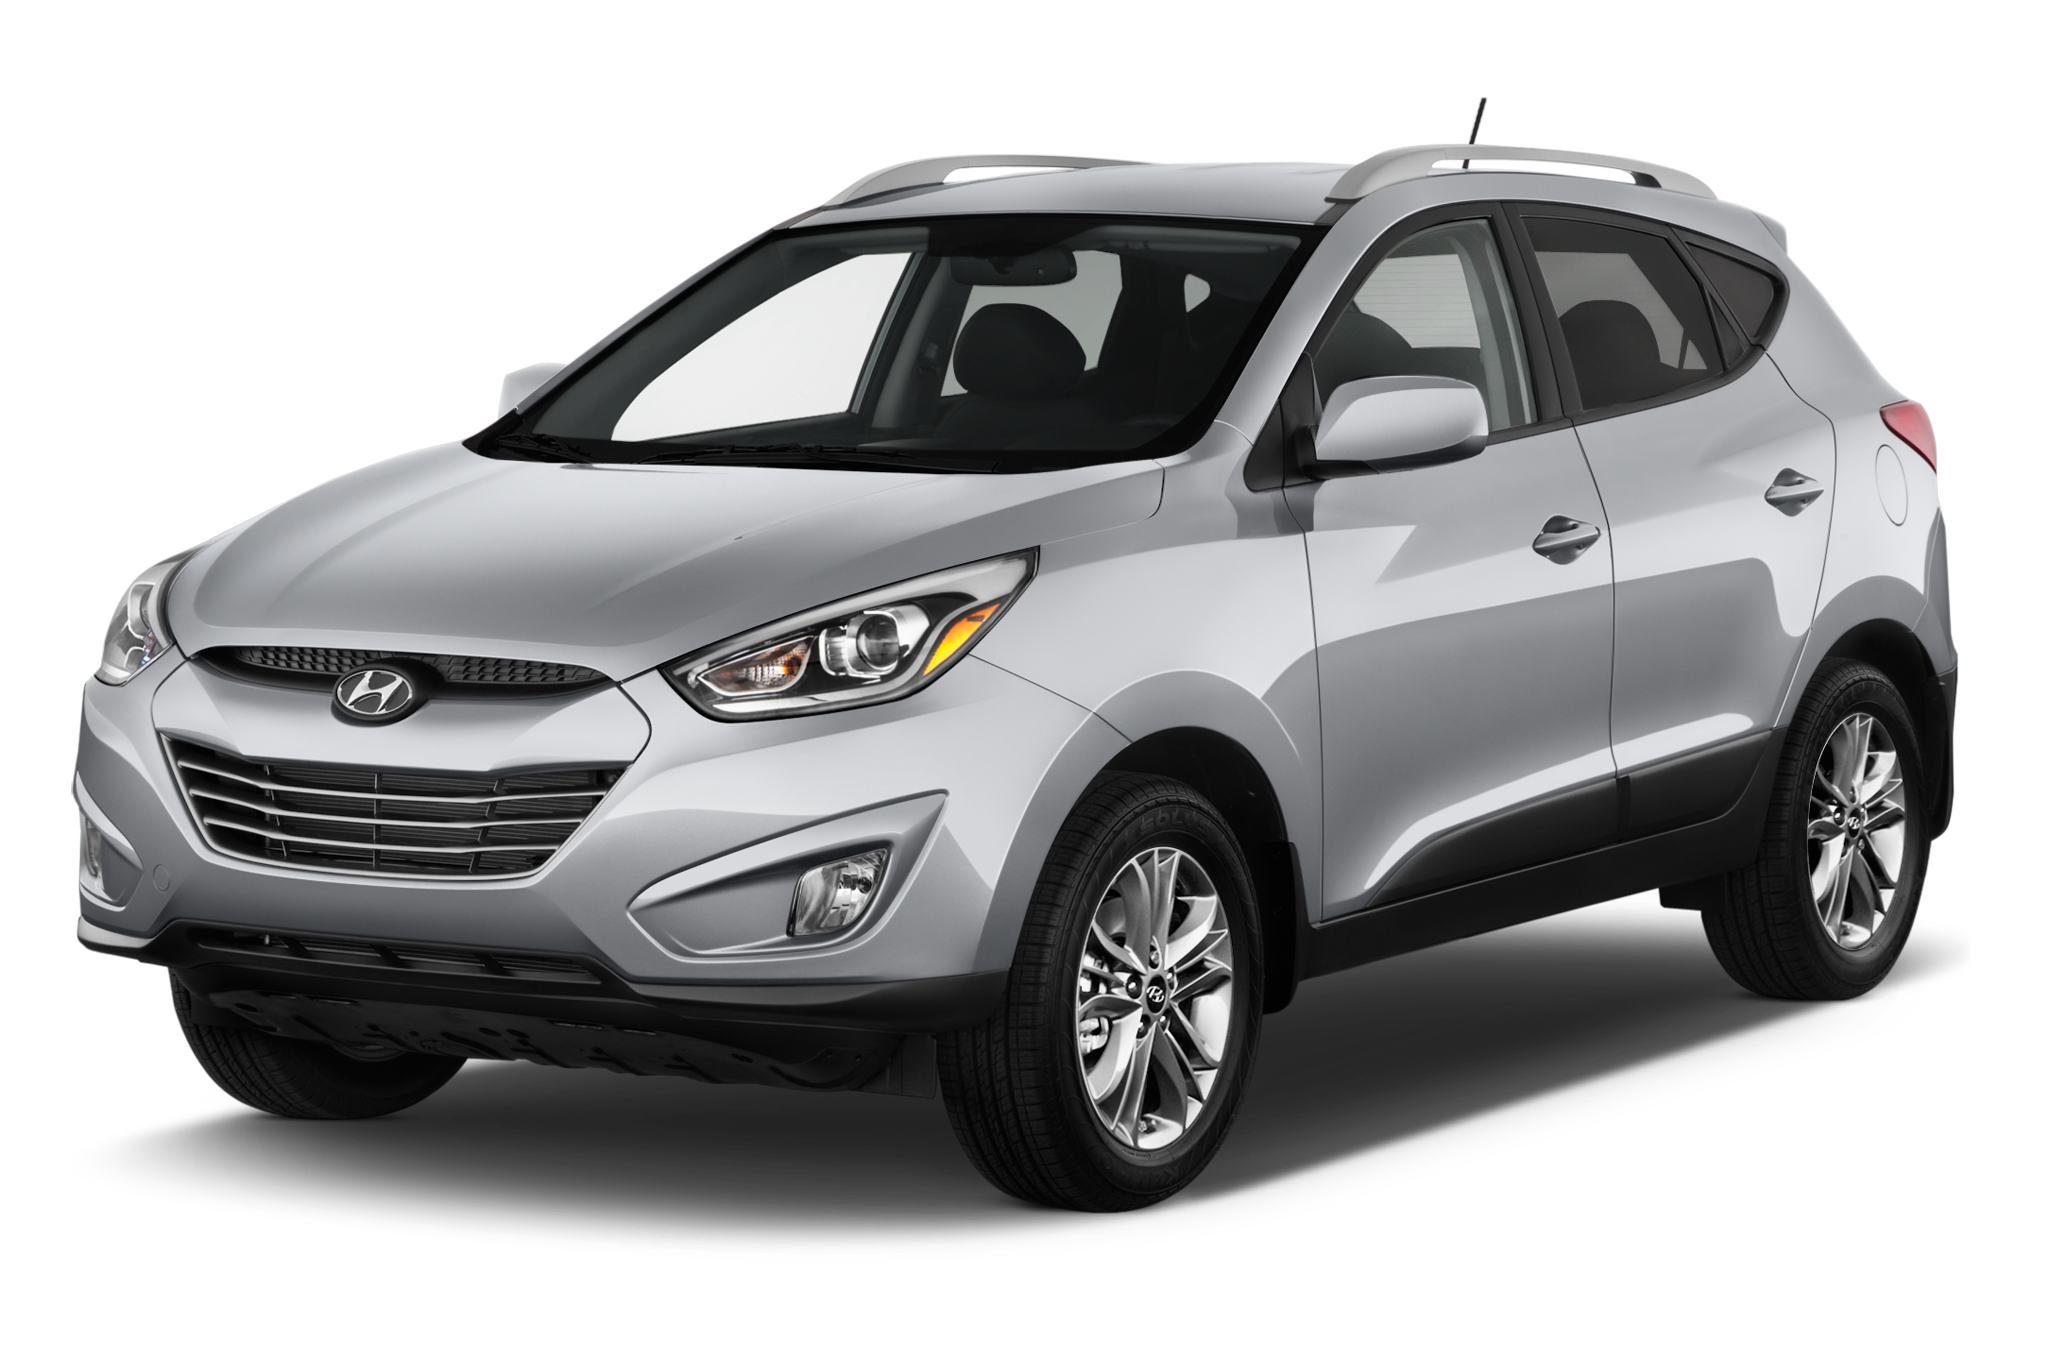 2015 hyundai tucson priced from 22 375. Black Bedroom Furniture Sets. Home Design Ideas